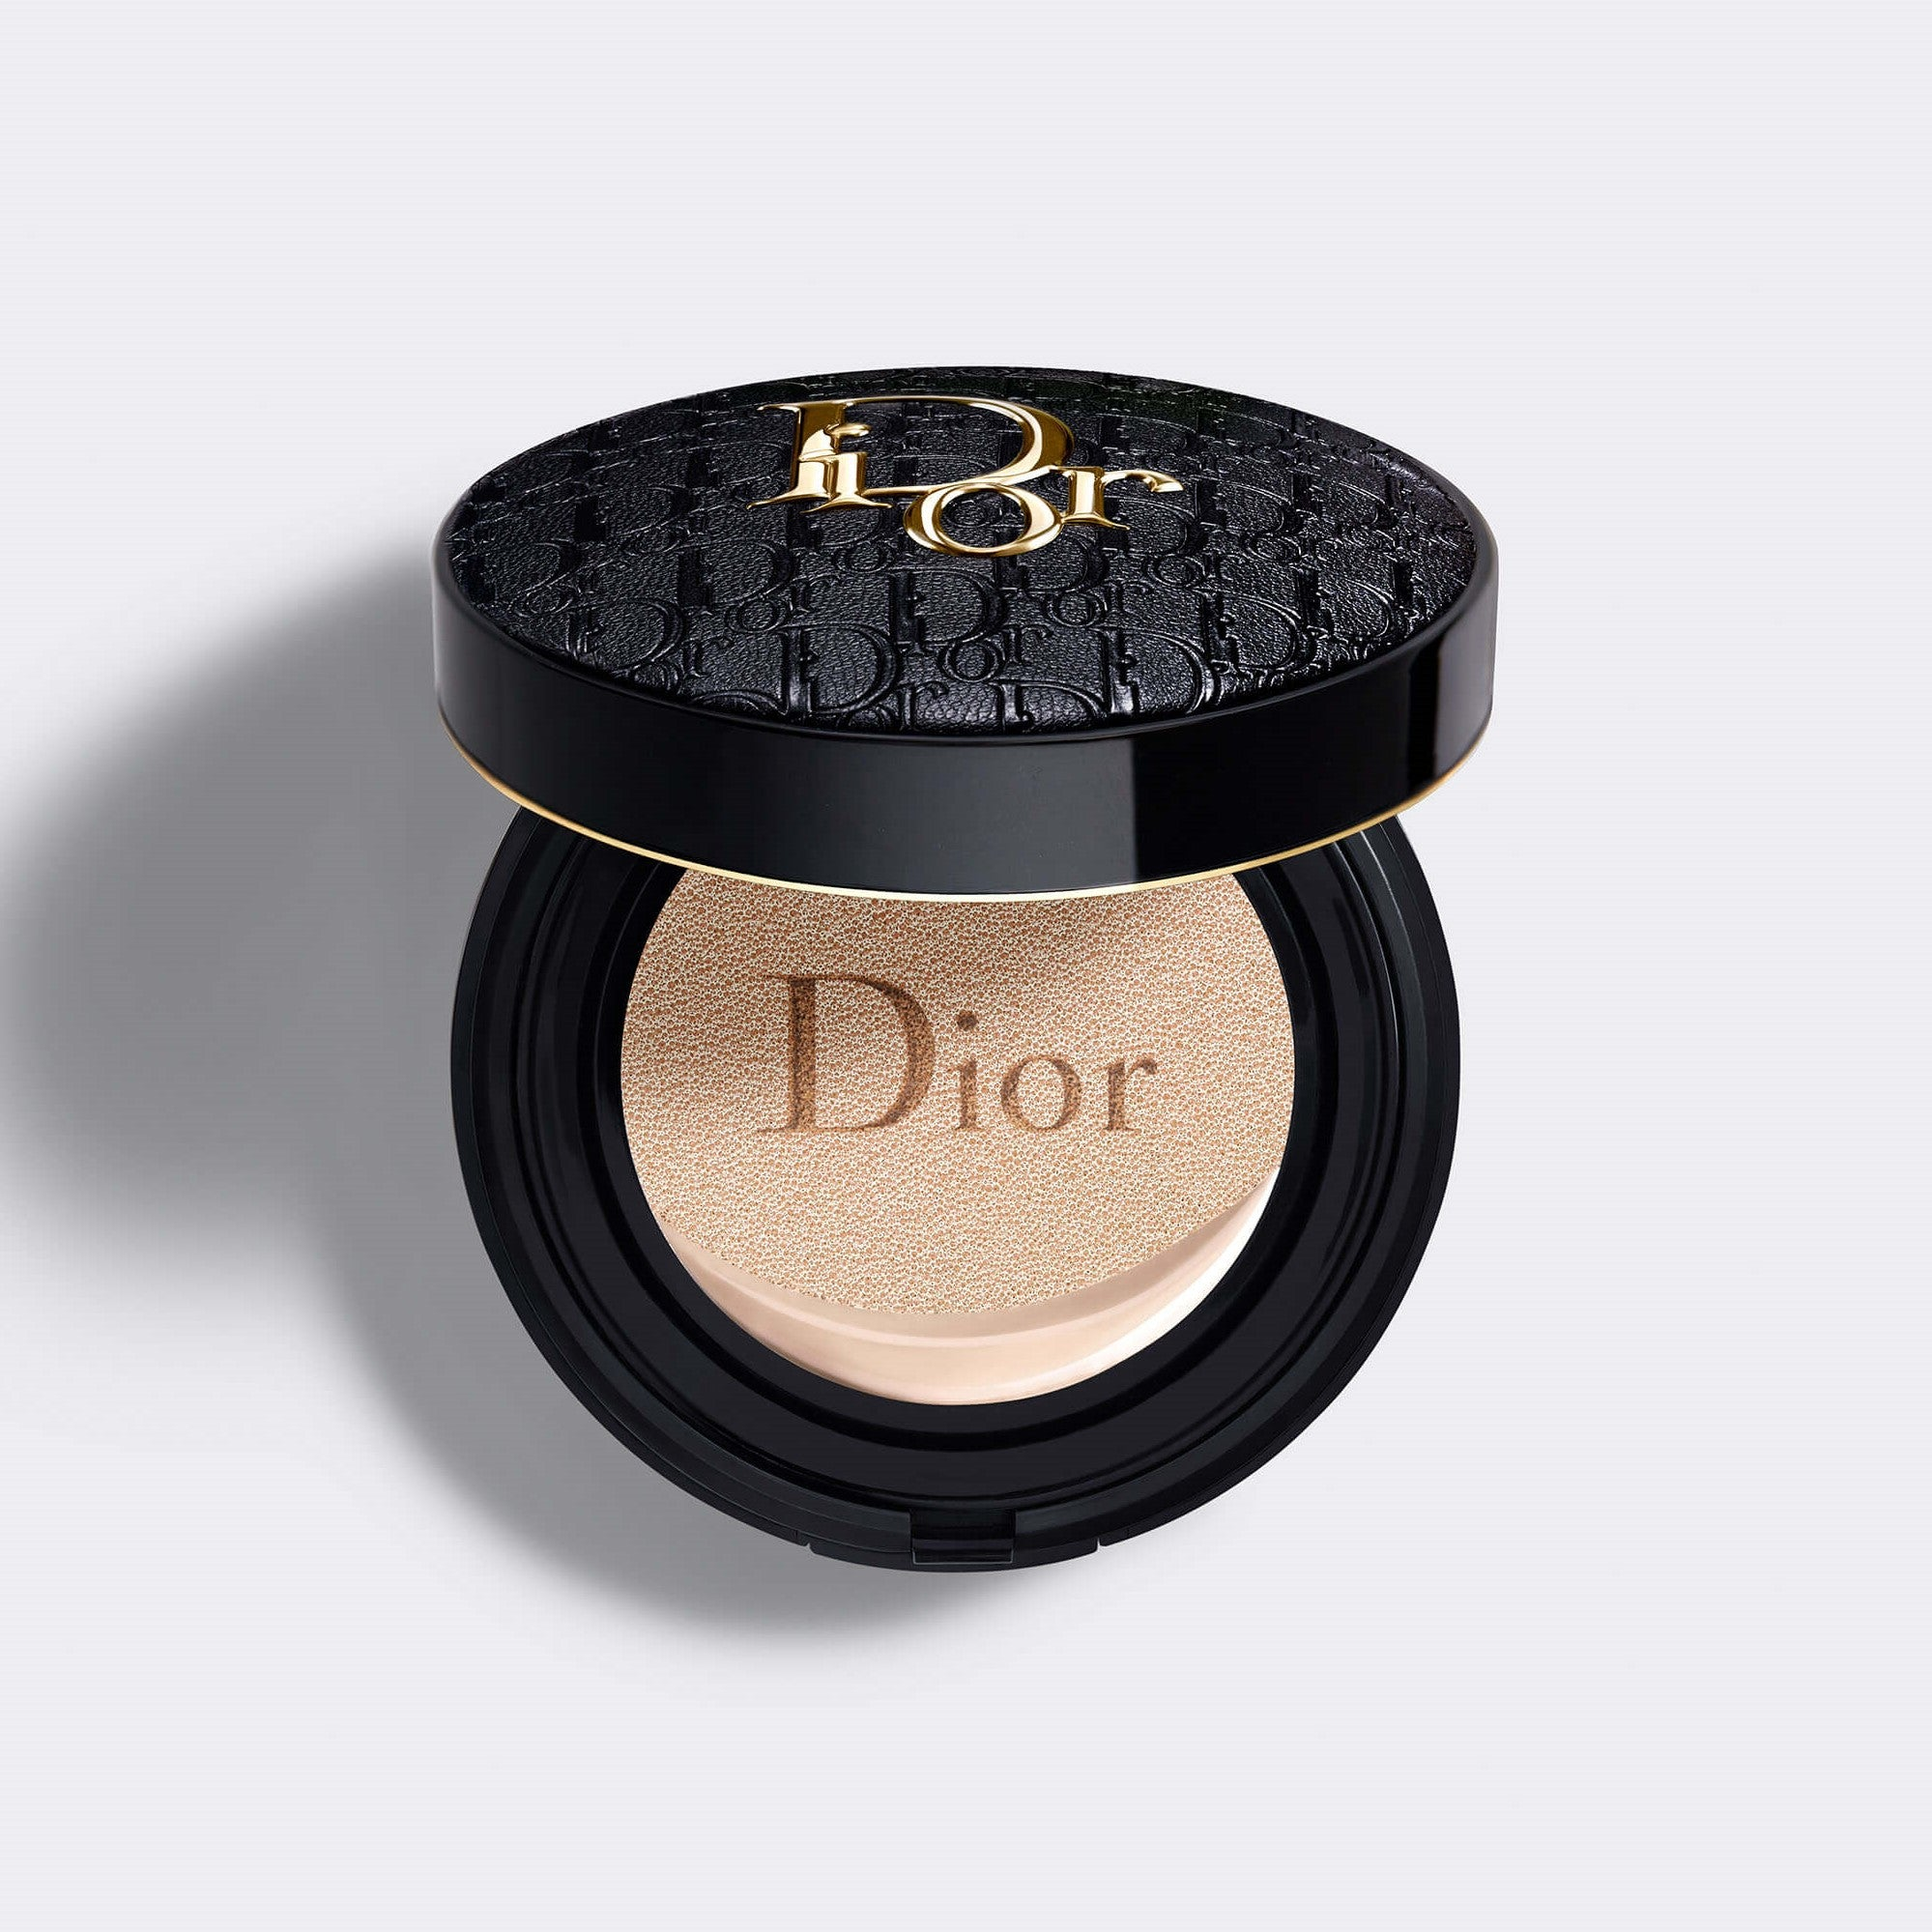 Dior Forever Perfect Cushion | Diormania Gold Limited Edition Cushion Foundation - 24H* Wear Fresh Foundation - High Perfection and Luminous Matte Finish - 24h Hydration**